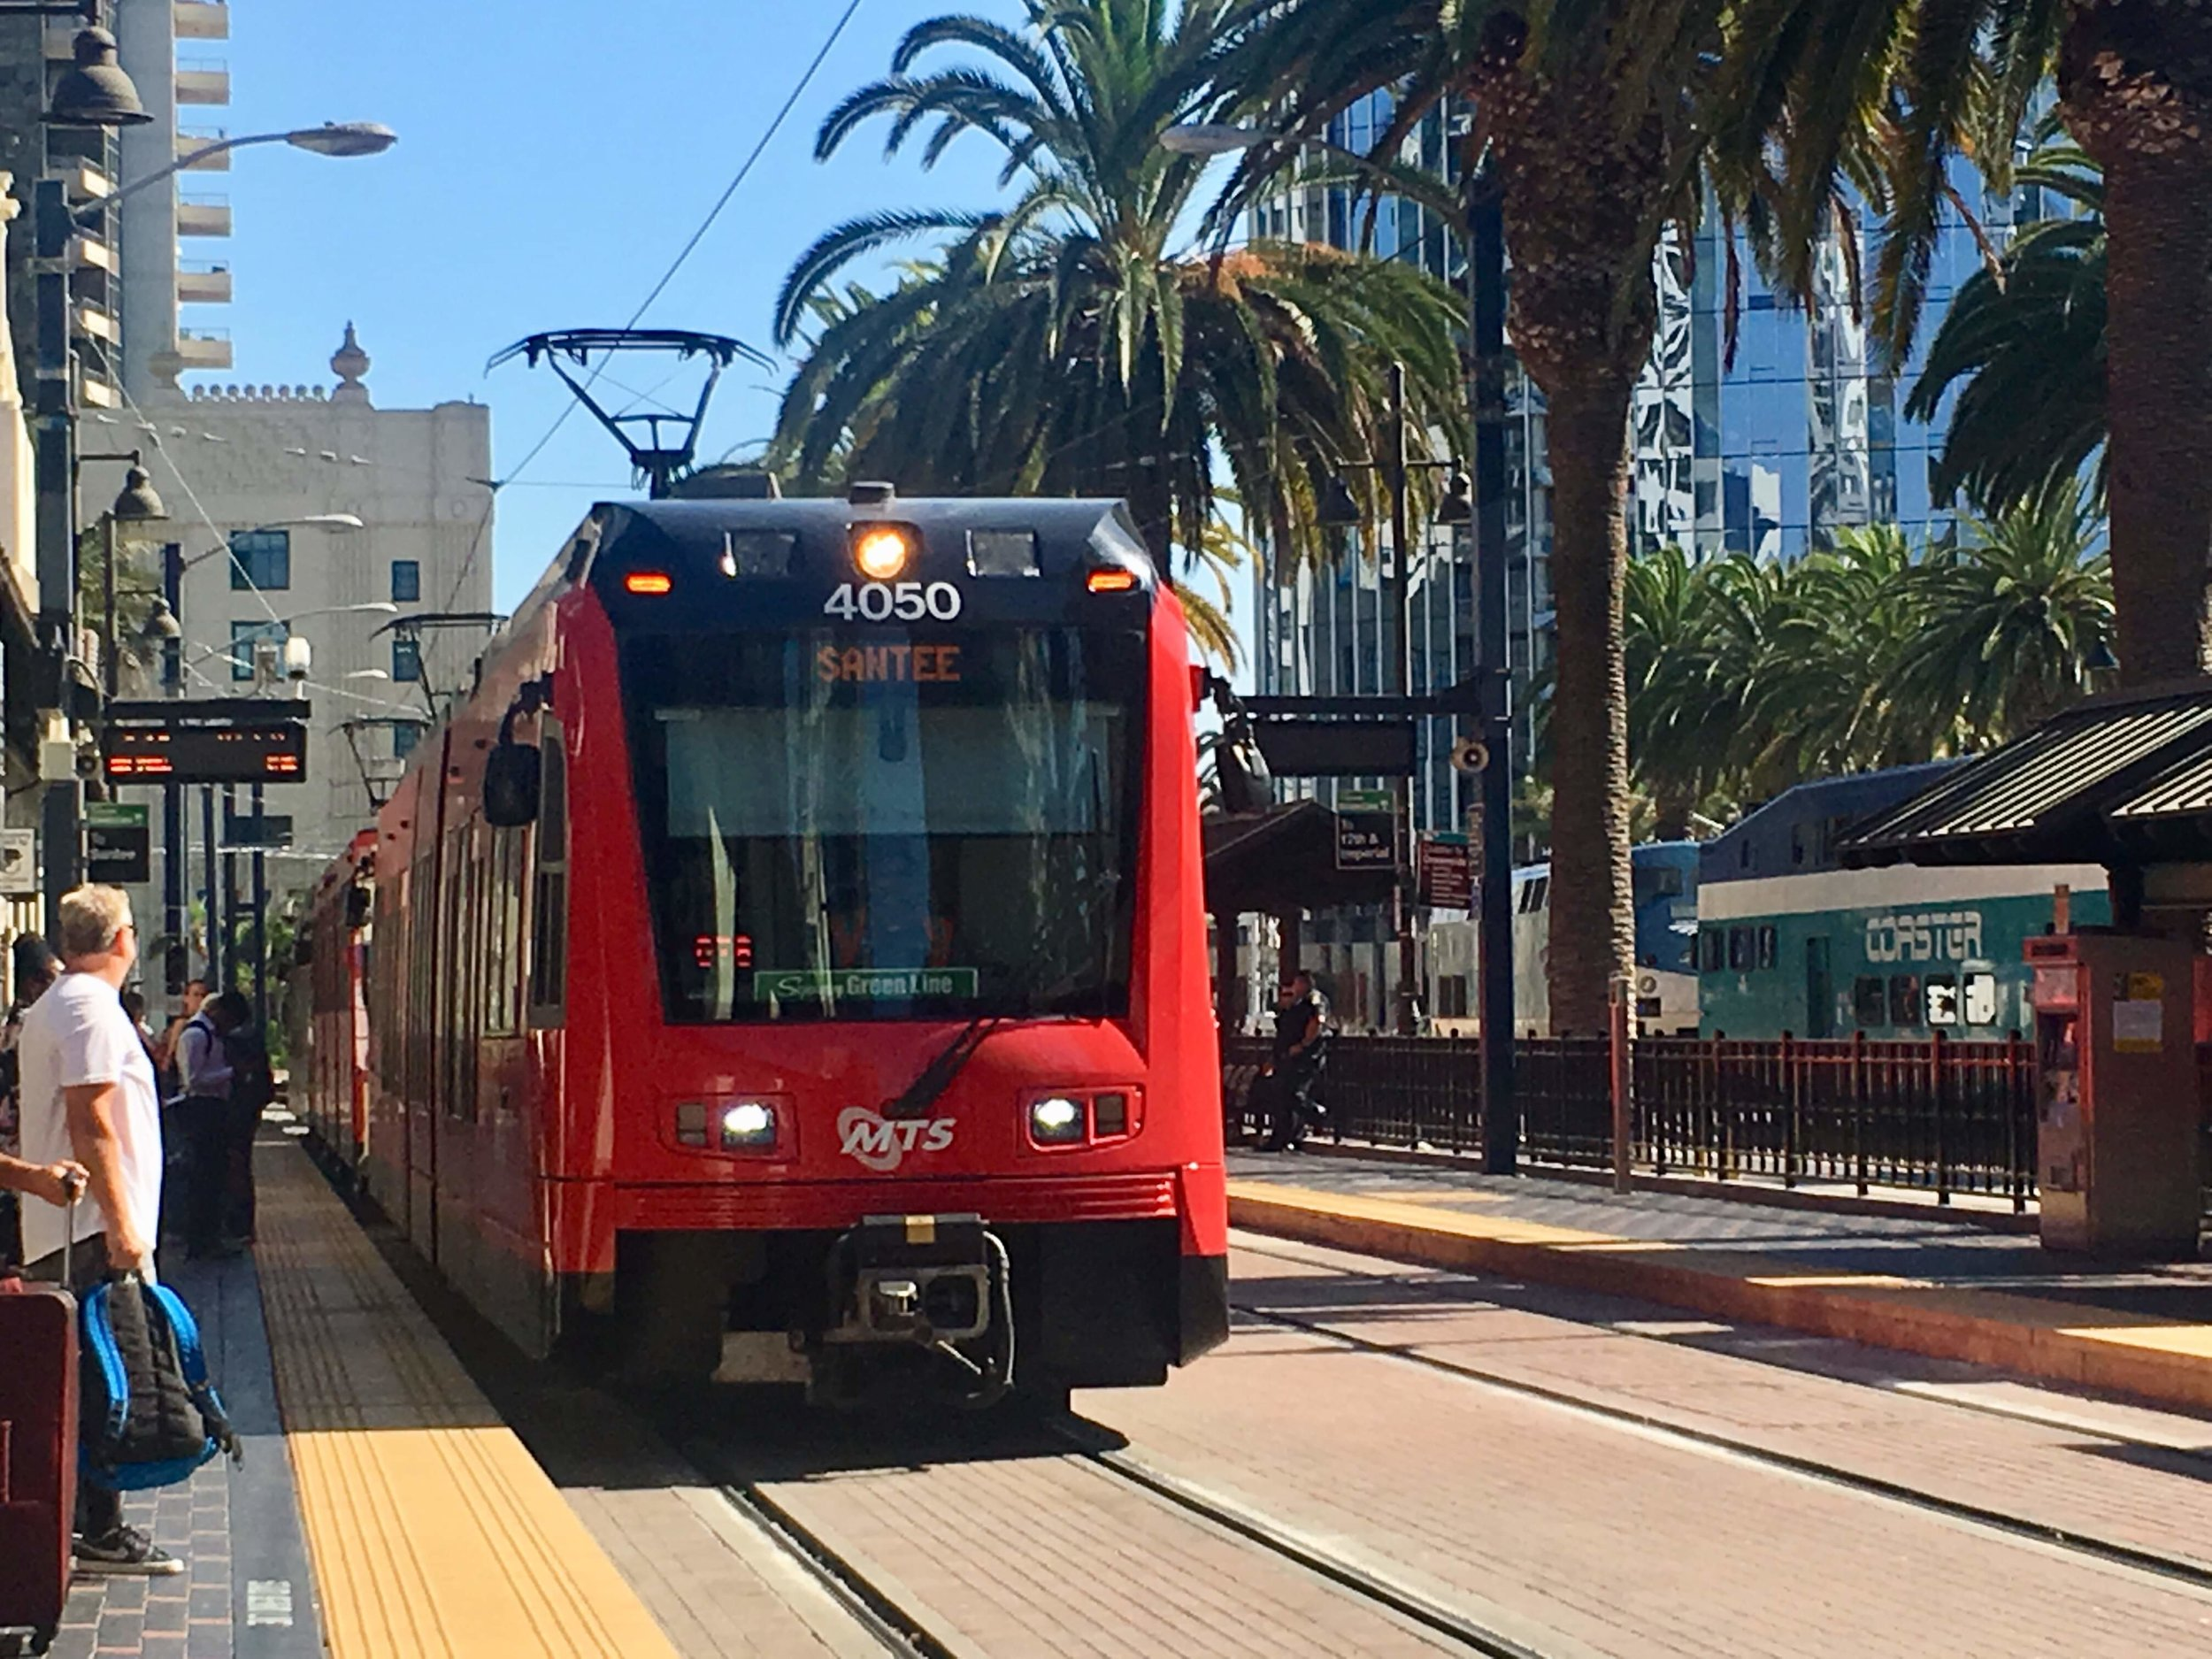 The San Diego Trolley. Not my best day on public transport